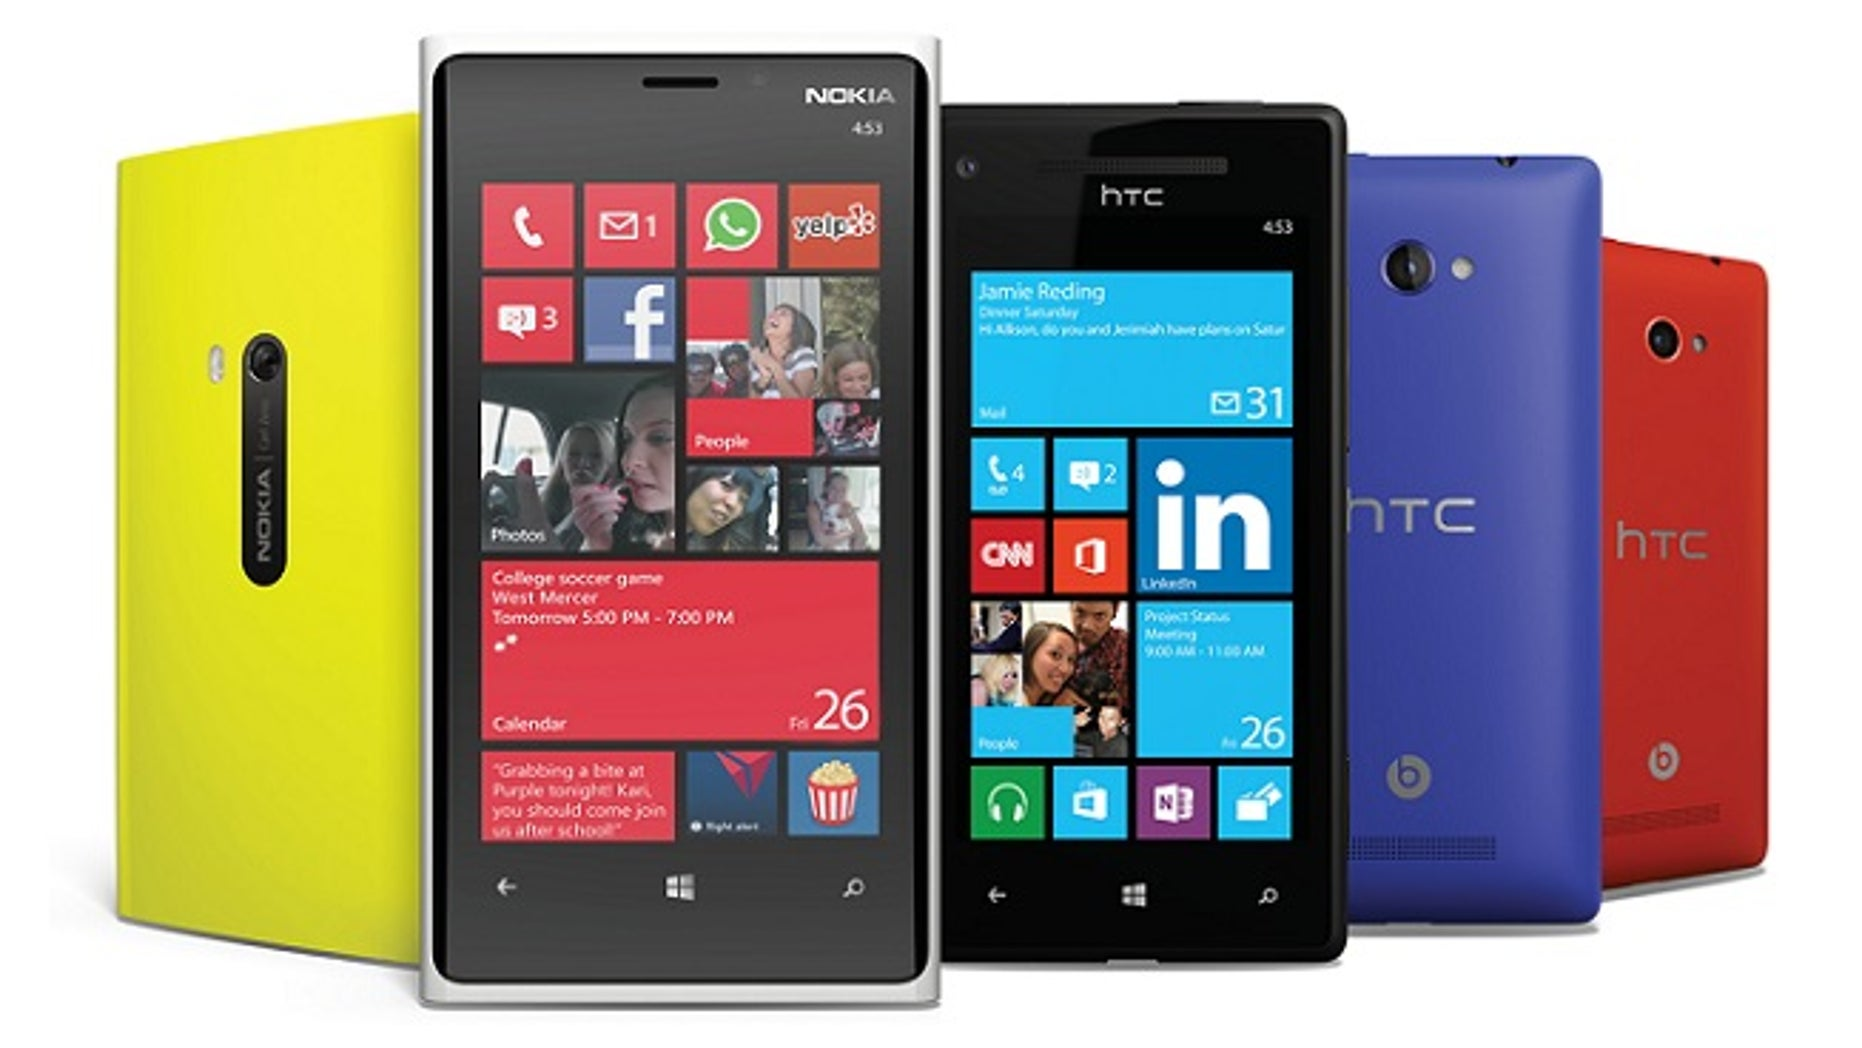 A collection of phones from different manufacturers running the newly released Windows Phone 8 softtware.